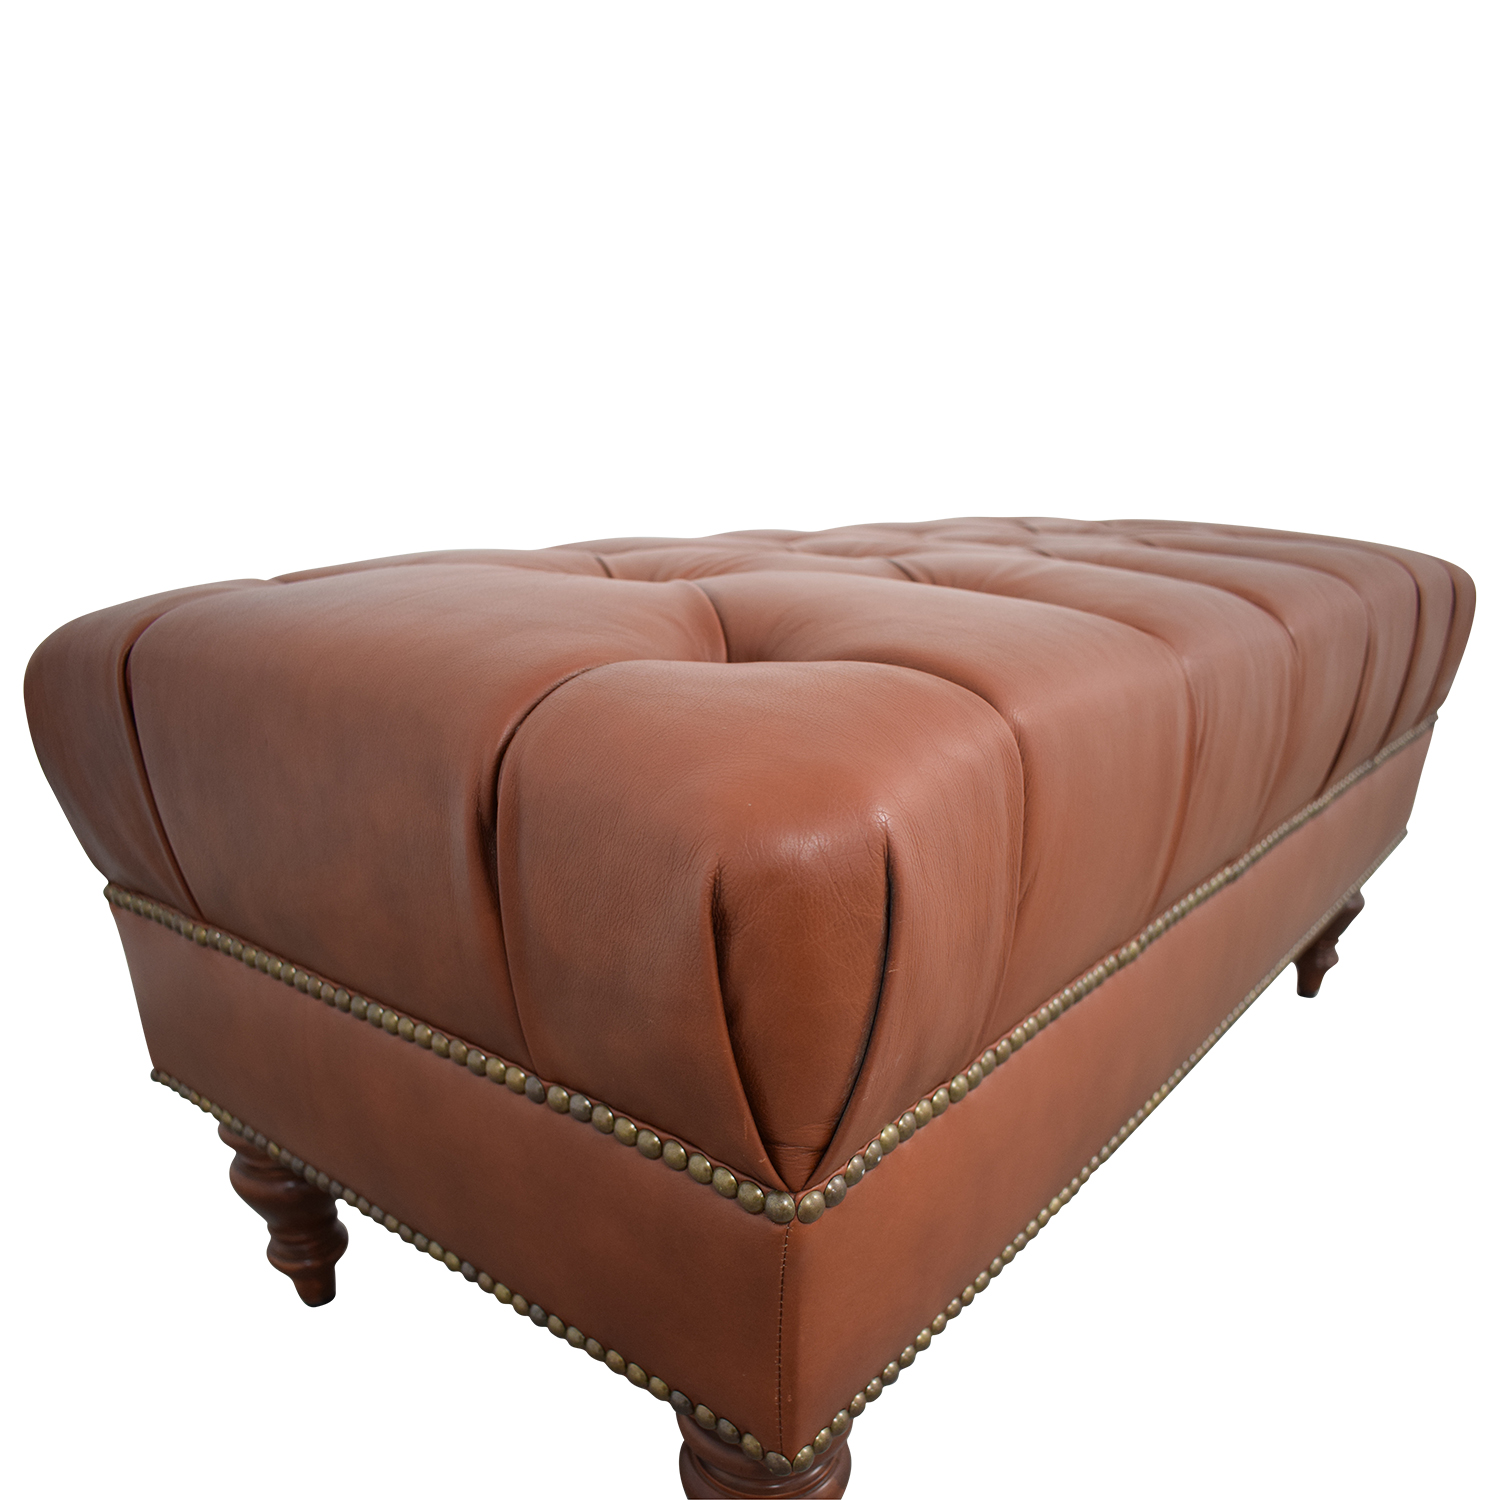 buy Furniture Masters Tufted Ottoman Furniture Masters